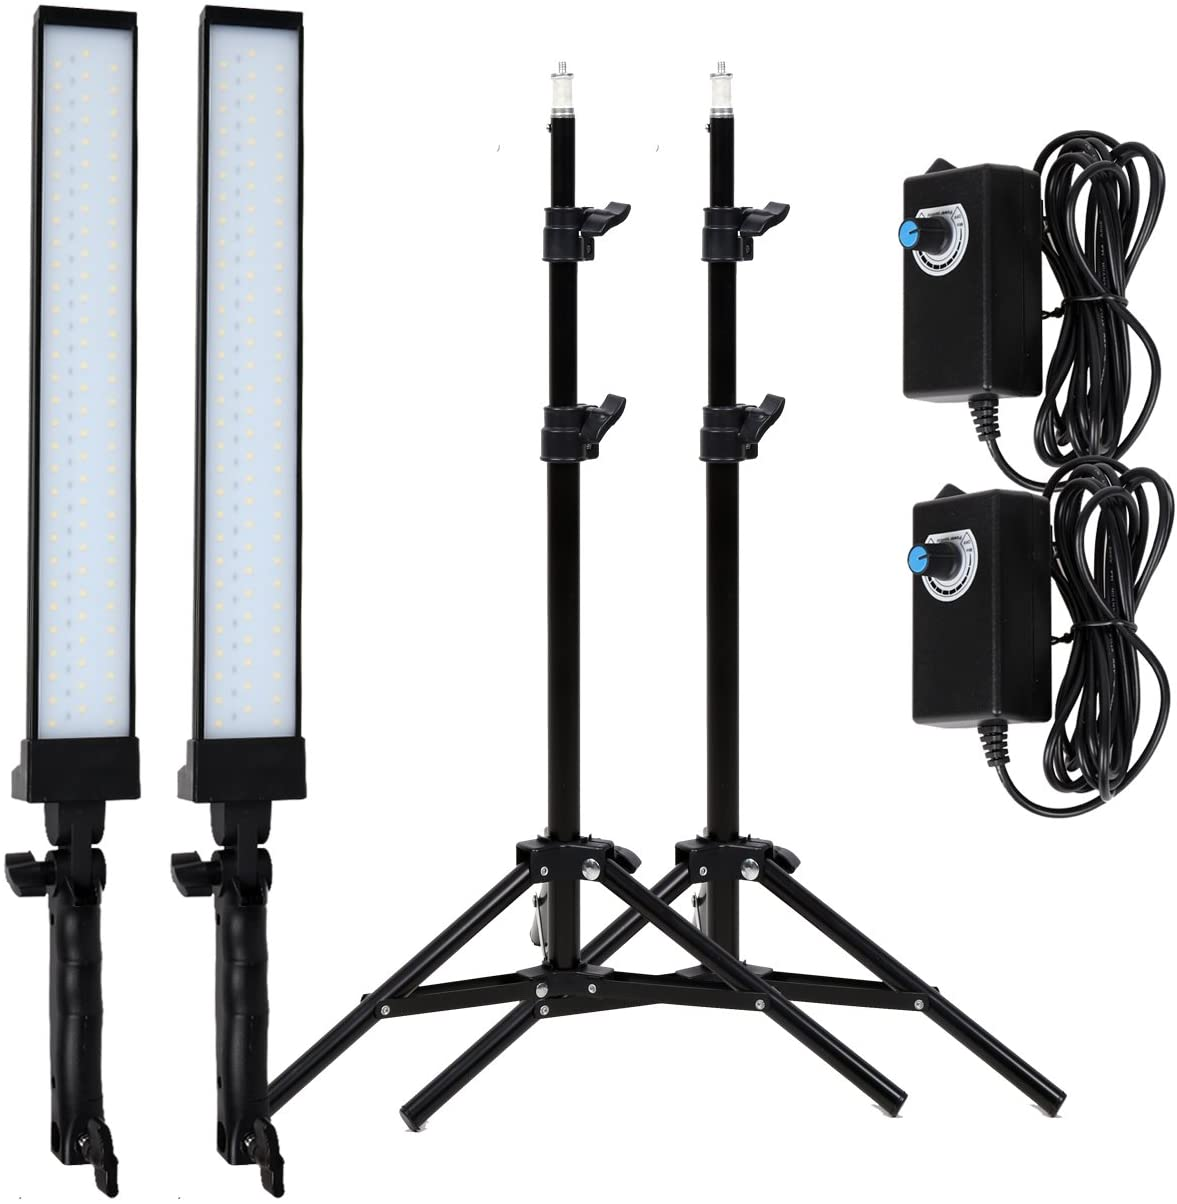 GSKAIWEN 180 LED Light Photography Studio LED Lighting Kit Adjustable Light with Light Stand Tripod Photographic Video Fill Light